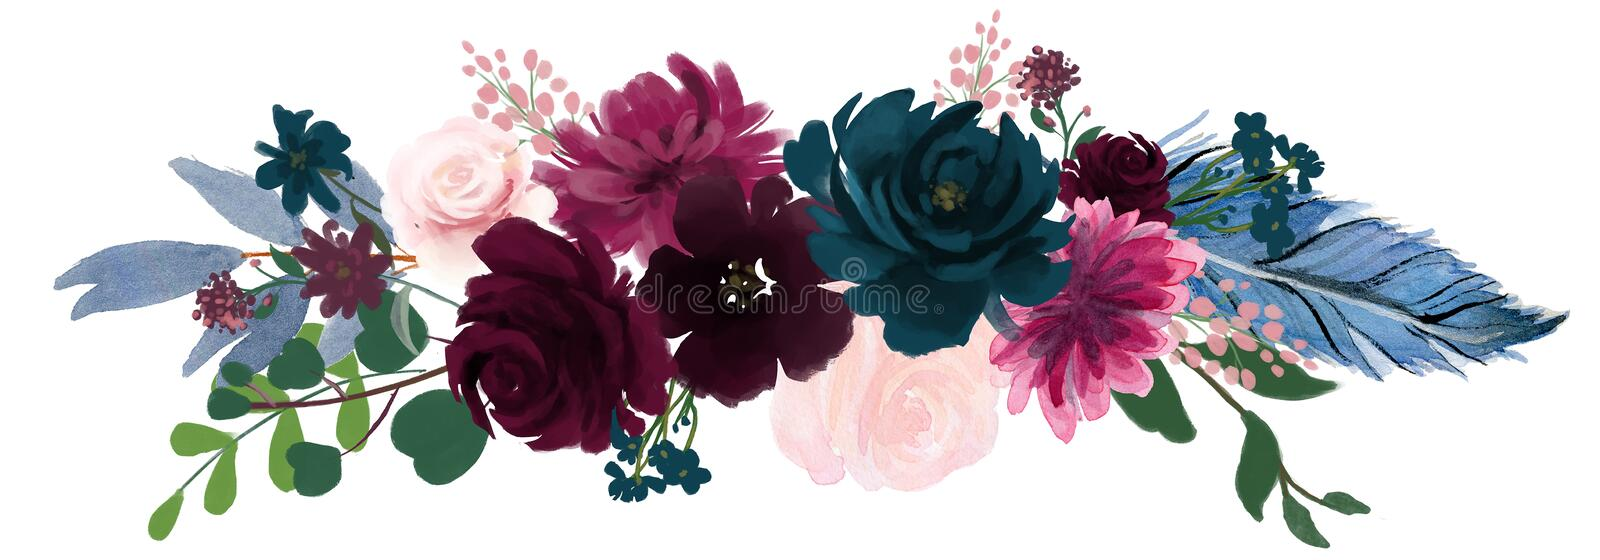 Watercolor vintage floral composition Pink and blue Floral Bouquet Flowers and Feathers. Isolated royalty free illustration